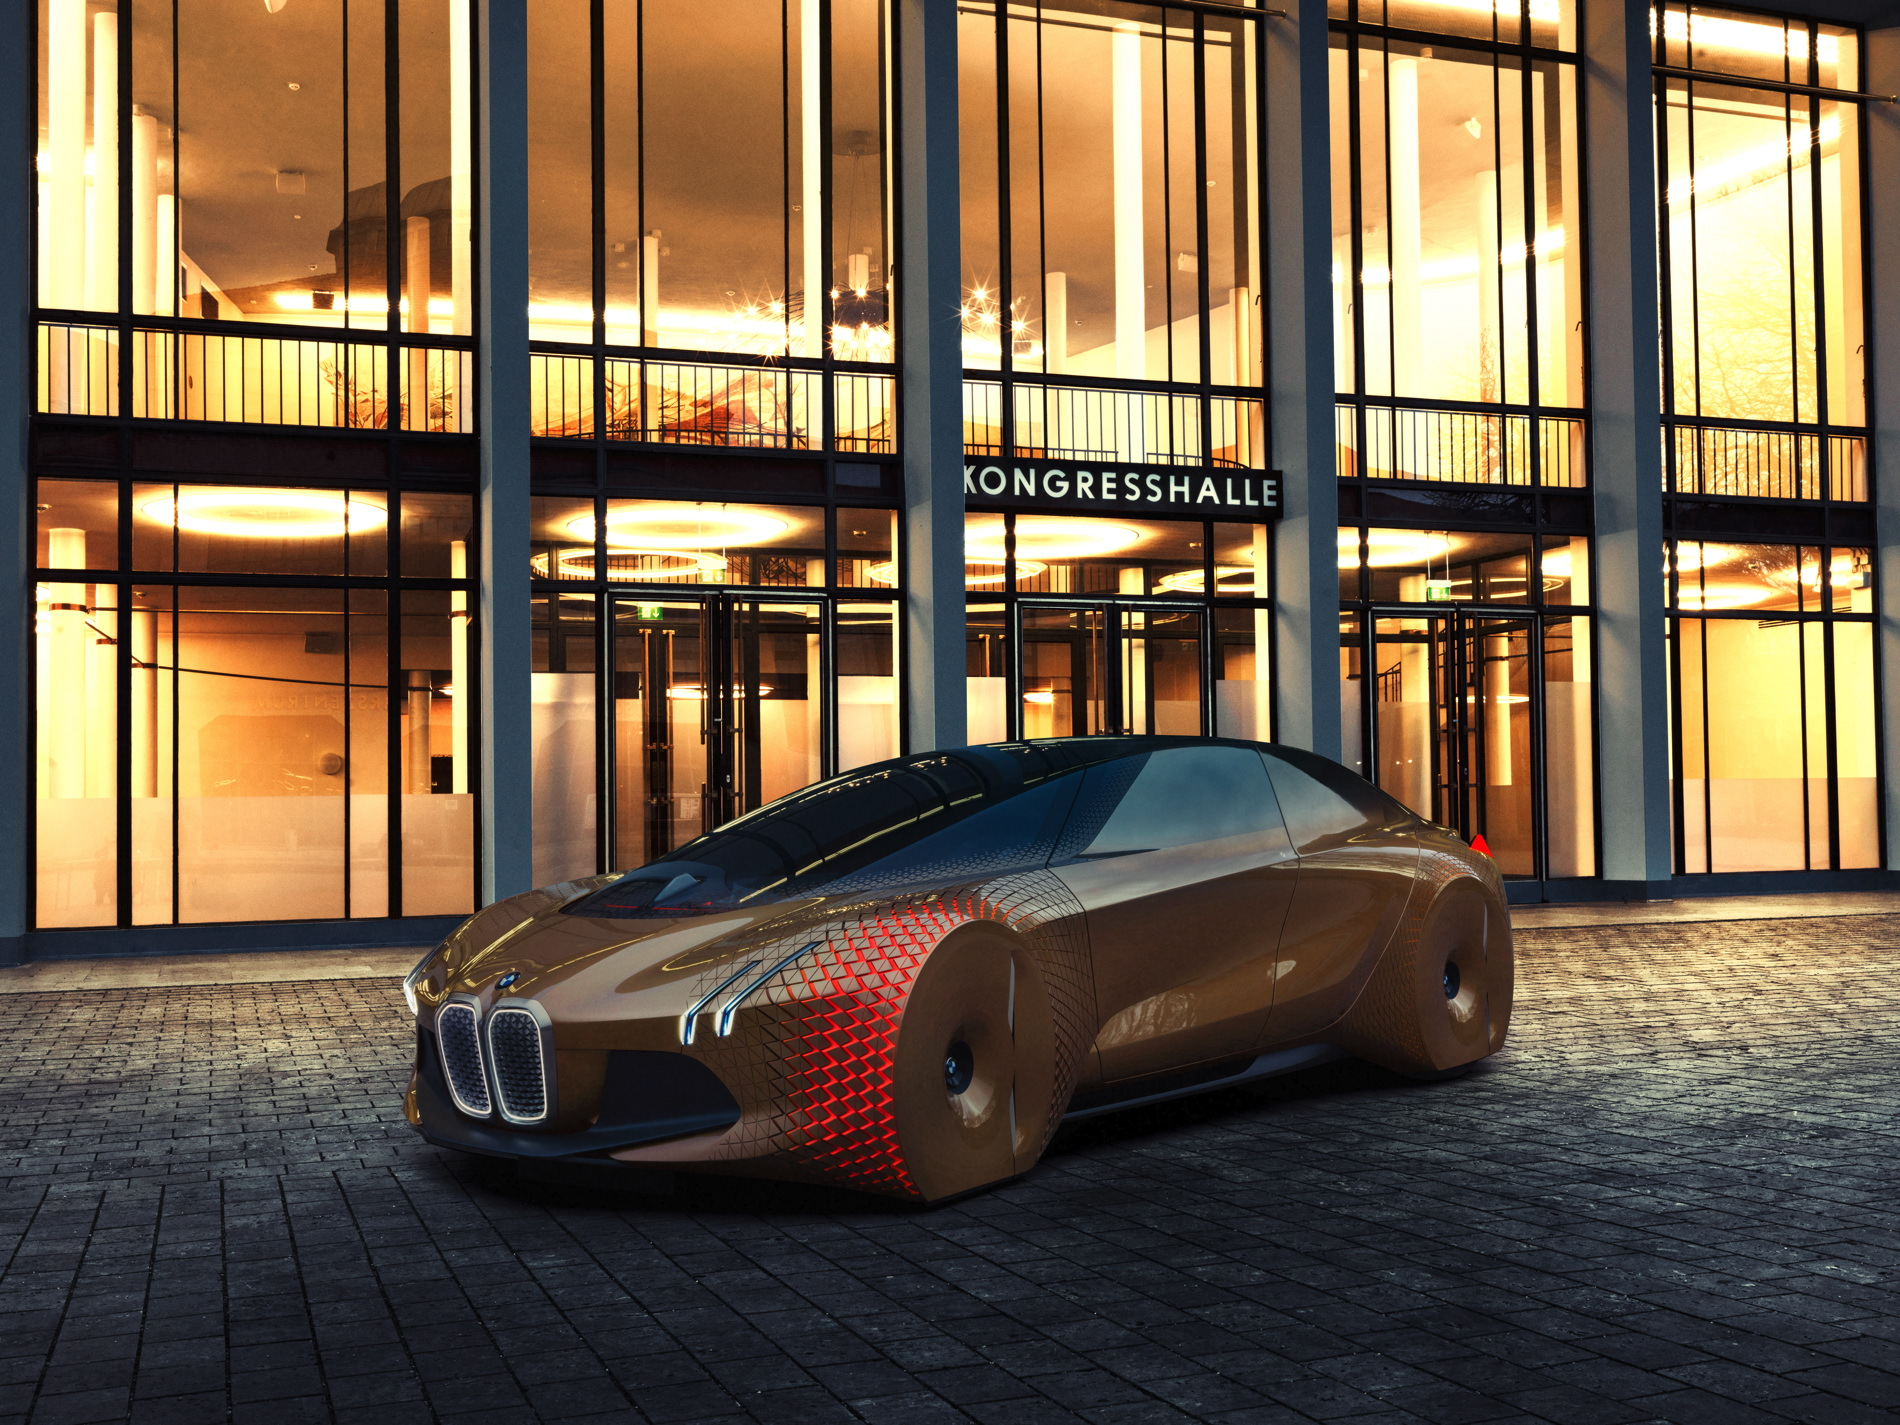 BMW Vision Next 100 images 137